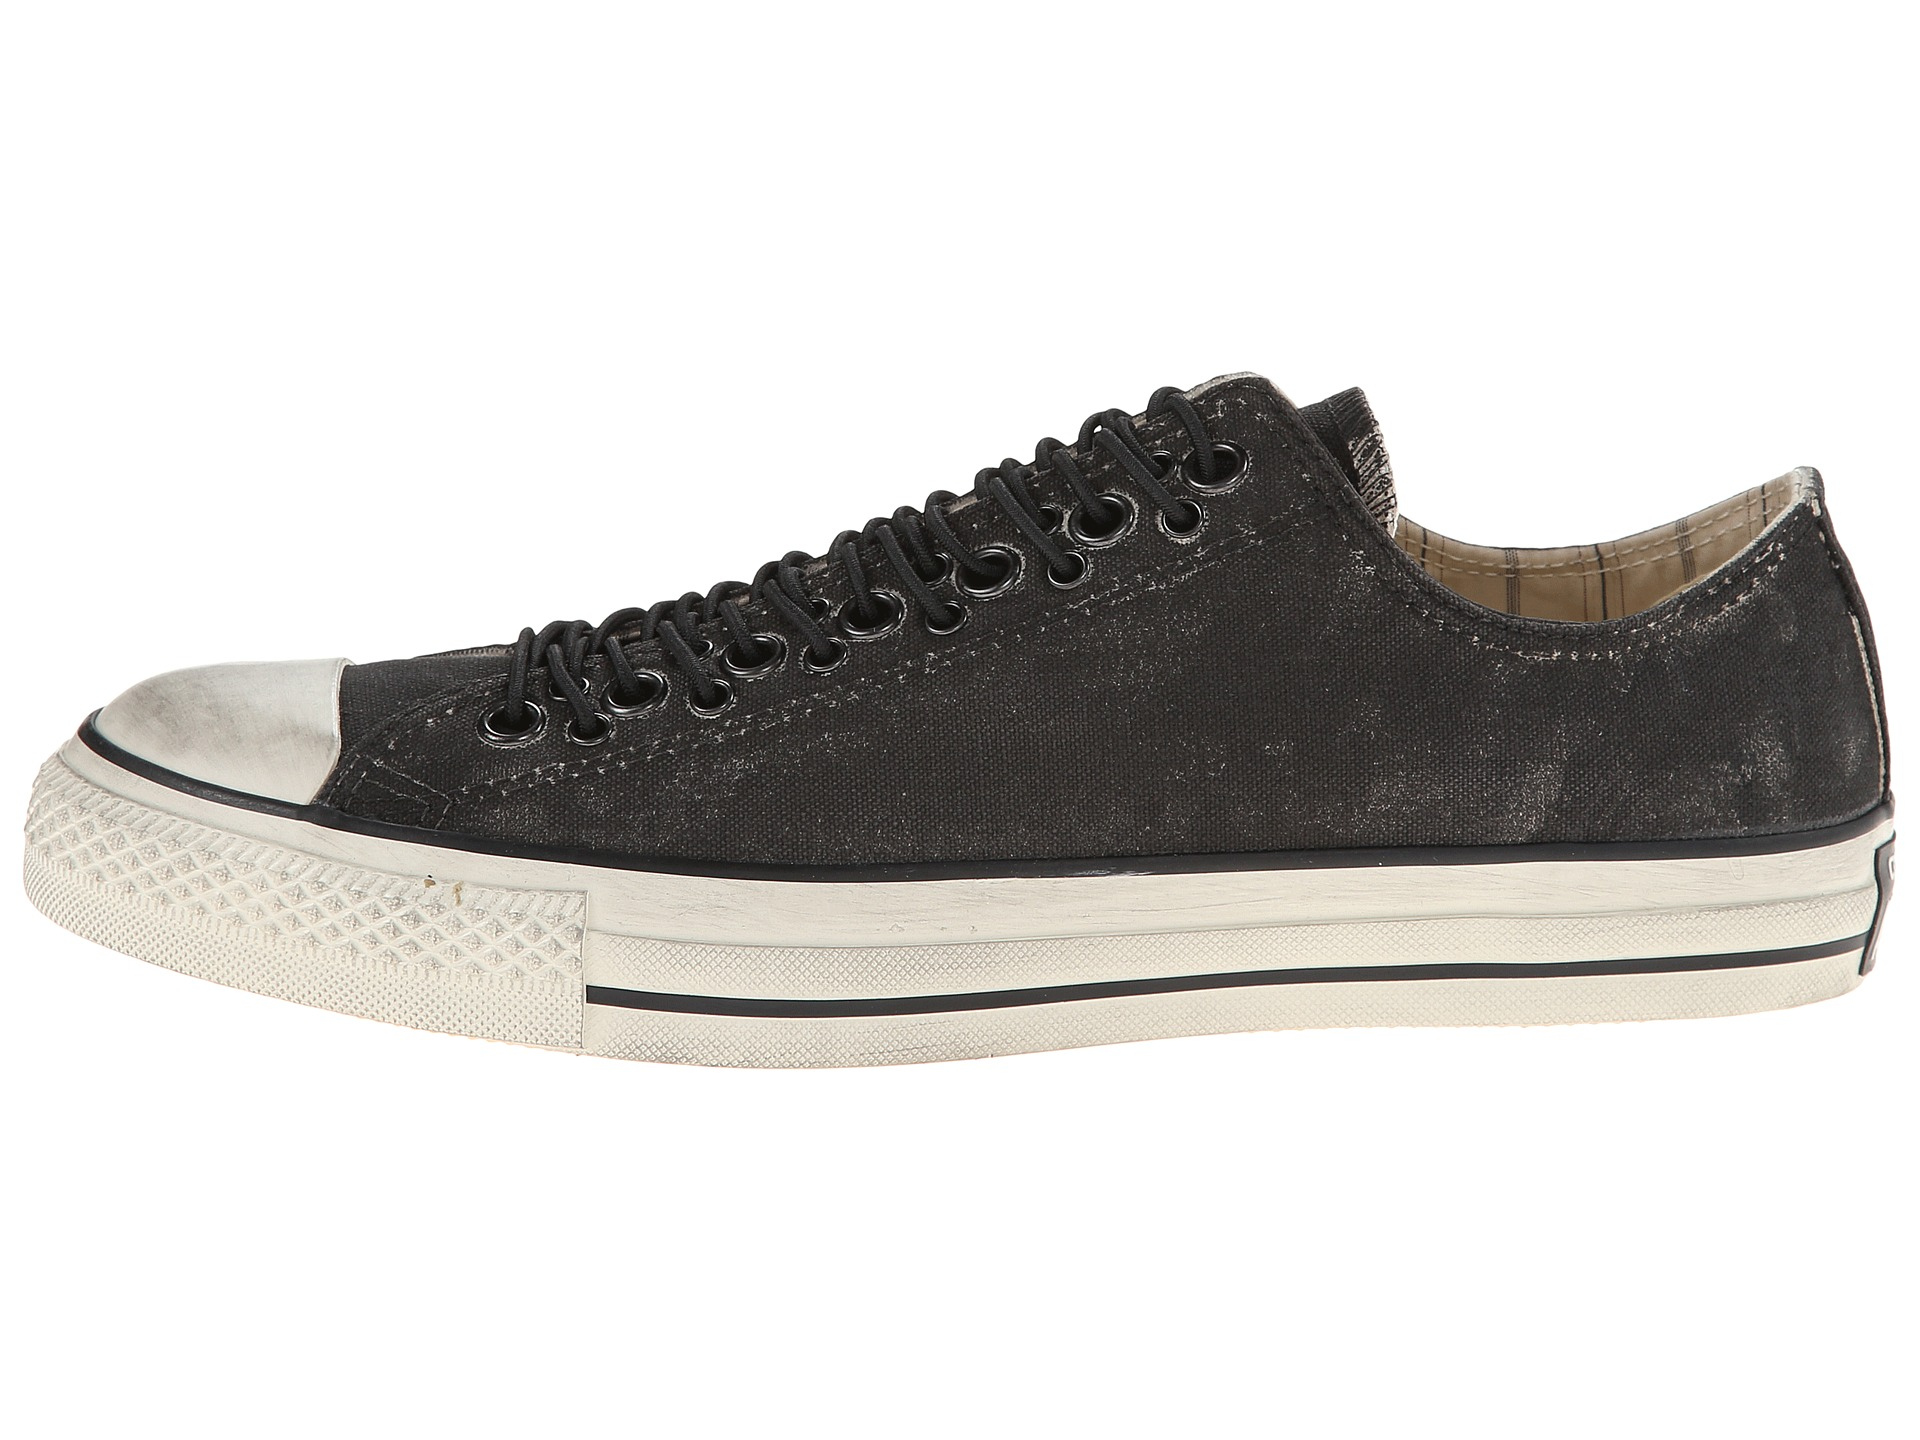 1656f368abea Lyst - Converse Chuck Taylor All Star Multi Eyelet Painted Canvas in ...